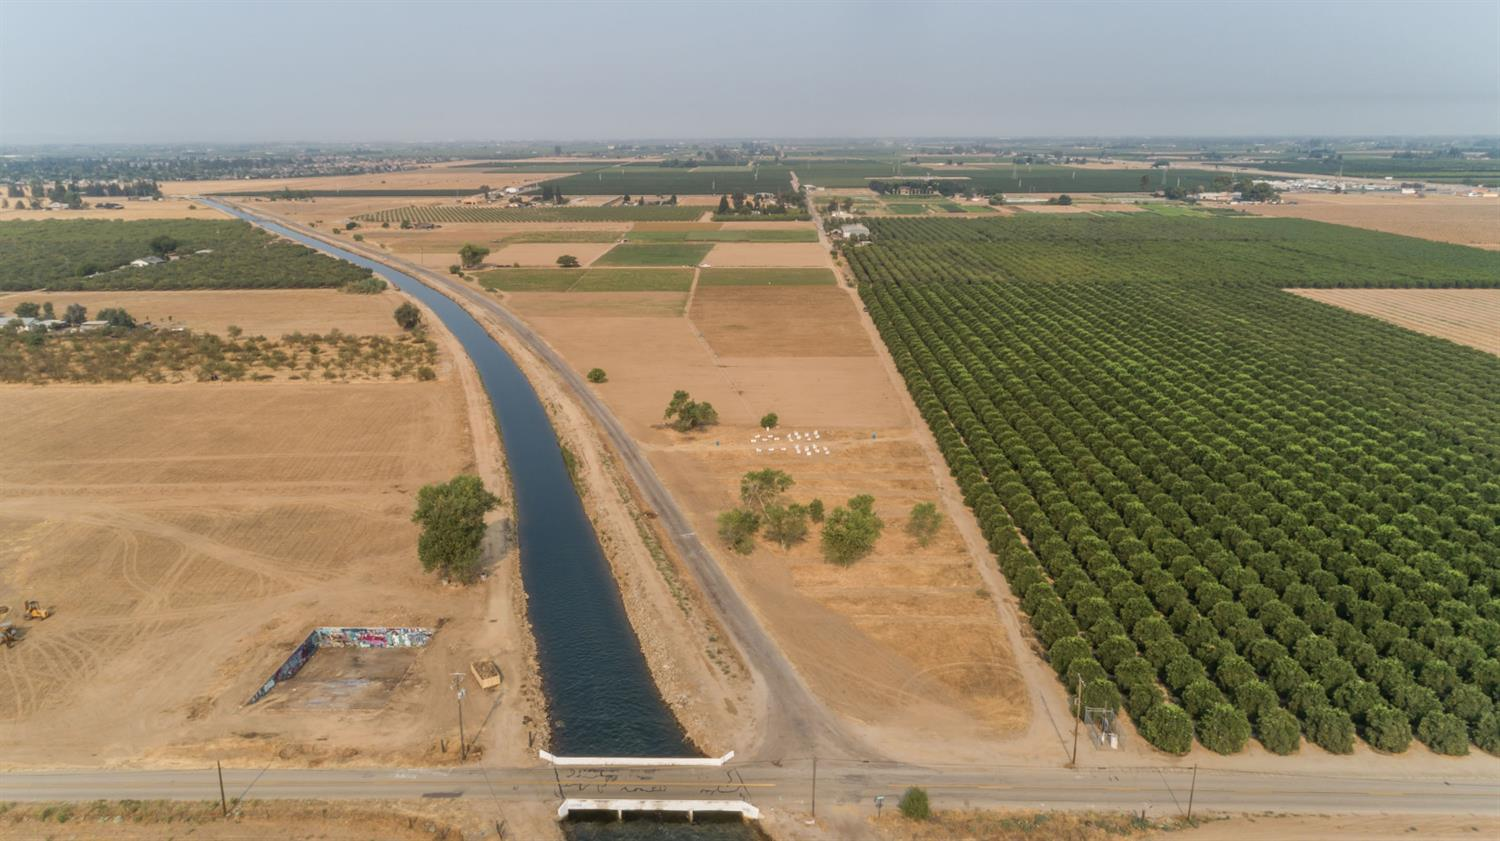 40 Acres of Open Land and currently on a short term lease. Ag well and Kings River Consolidated water. Property has electric and septic hookups from previous home on property. Proposed annexation into the City of Sanger sphere of influence and Residential high density zoning.